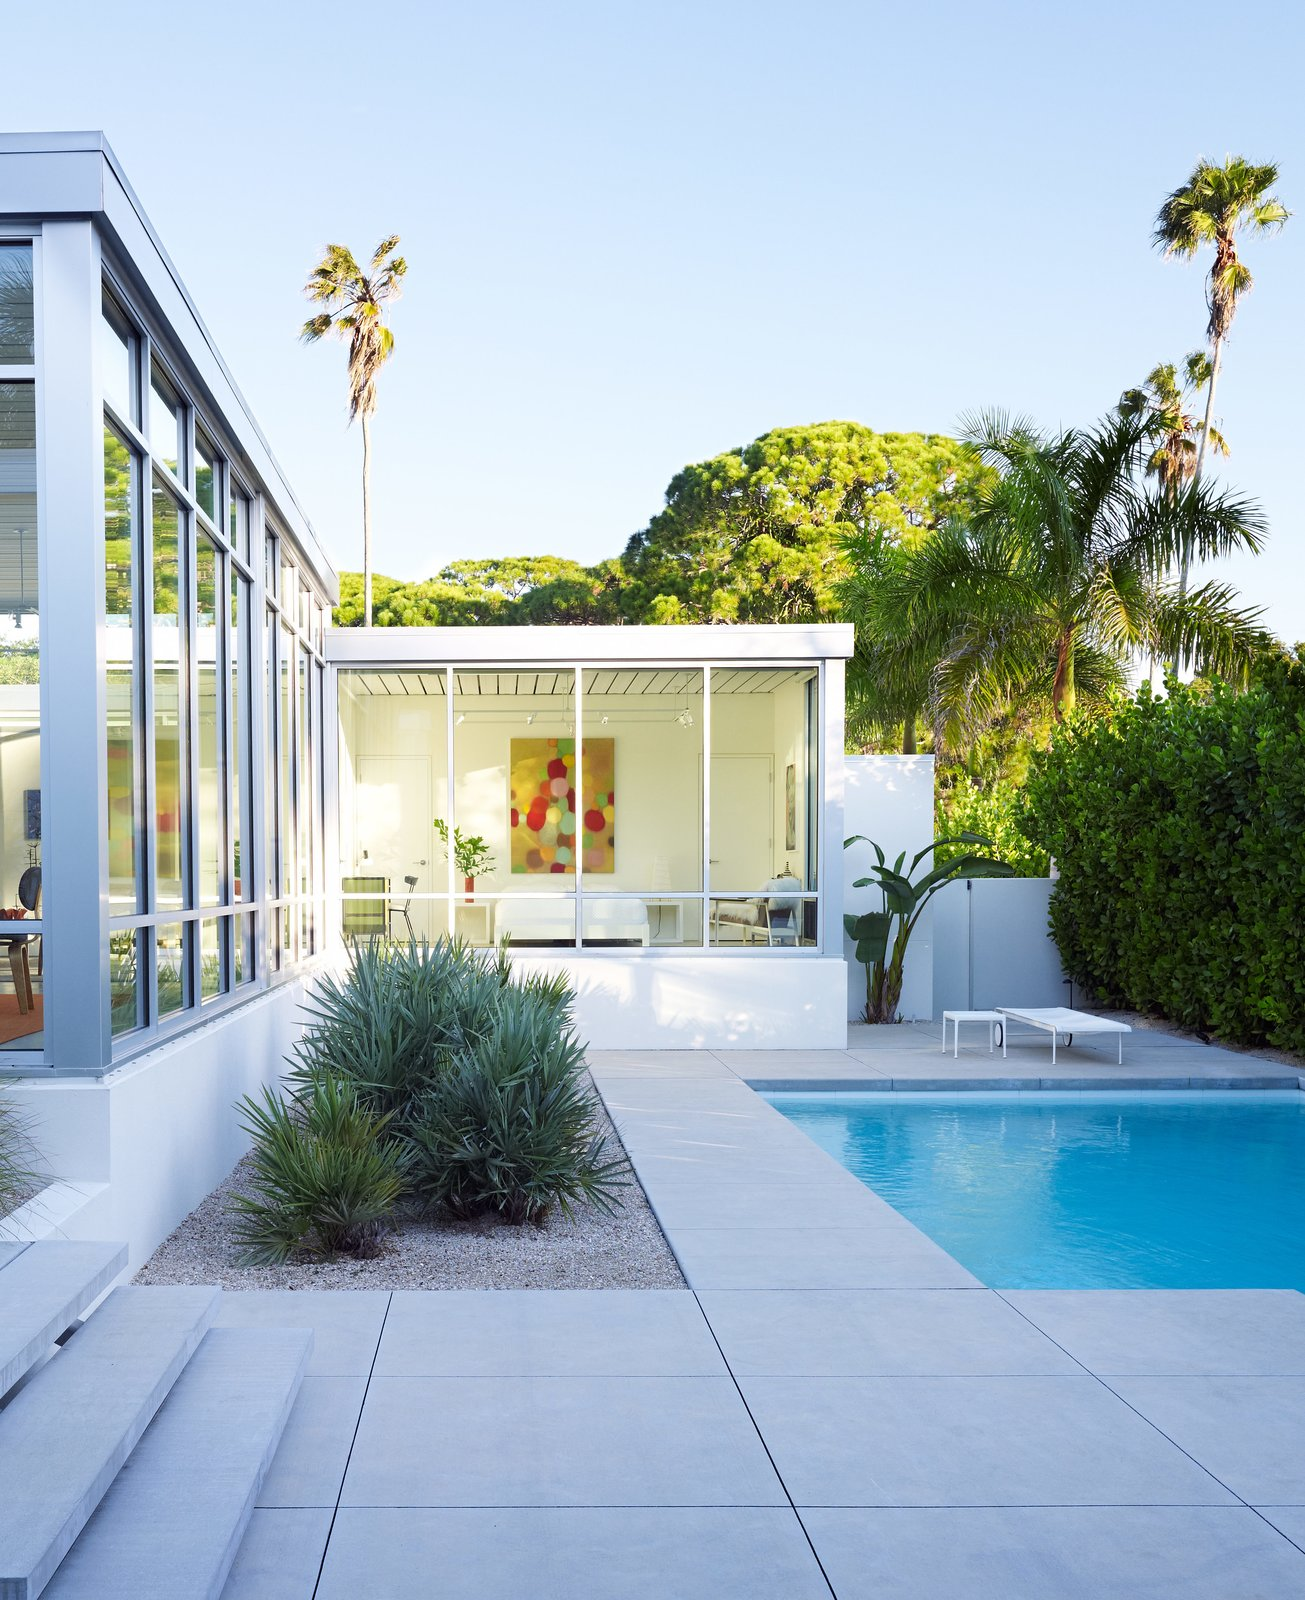 Outdoor, Small, Swimming, and Concrete Florida couple John Pirman and Steve Tetreault built a new house inspired by the Sarasota School. Today's FEMA codes required a plinth to lift the house five-and-a-half feet above grade and a roof that can withstand hurricane wind loads, making it a challenge to re-create the lightness of midcentury design, Pirman says.  Best Outdoor Swimming Small Photos from This Sparkling New Home Is a Perfect Remake of Classic Sarasota School Modernism